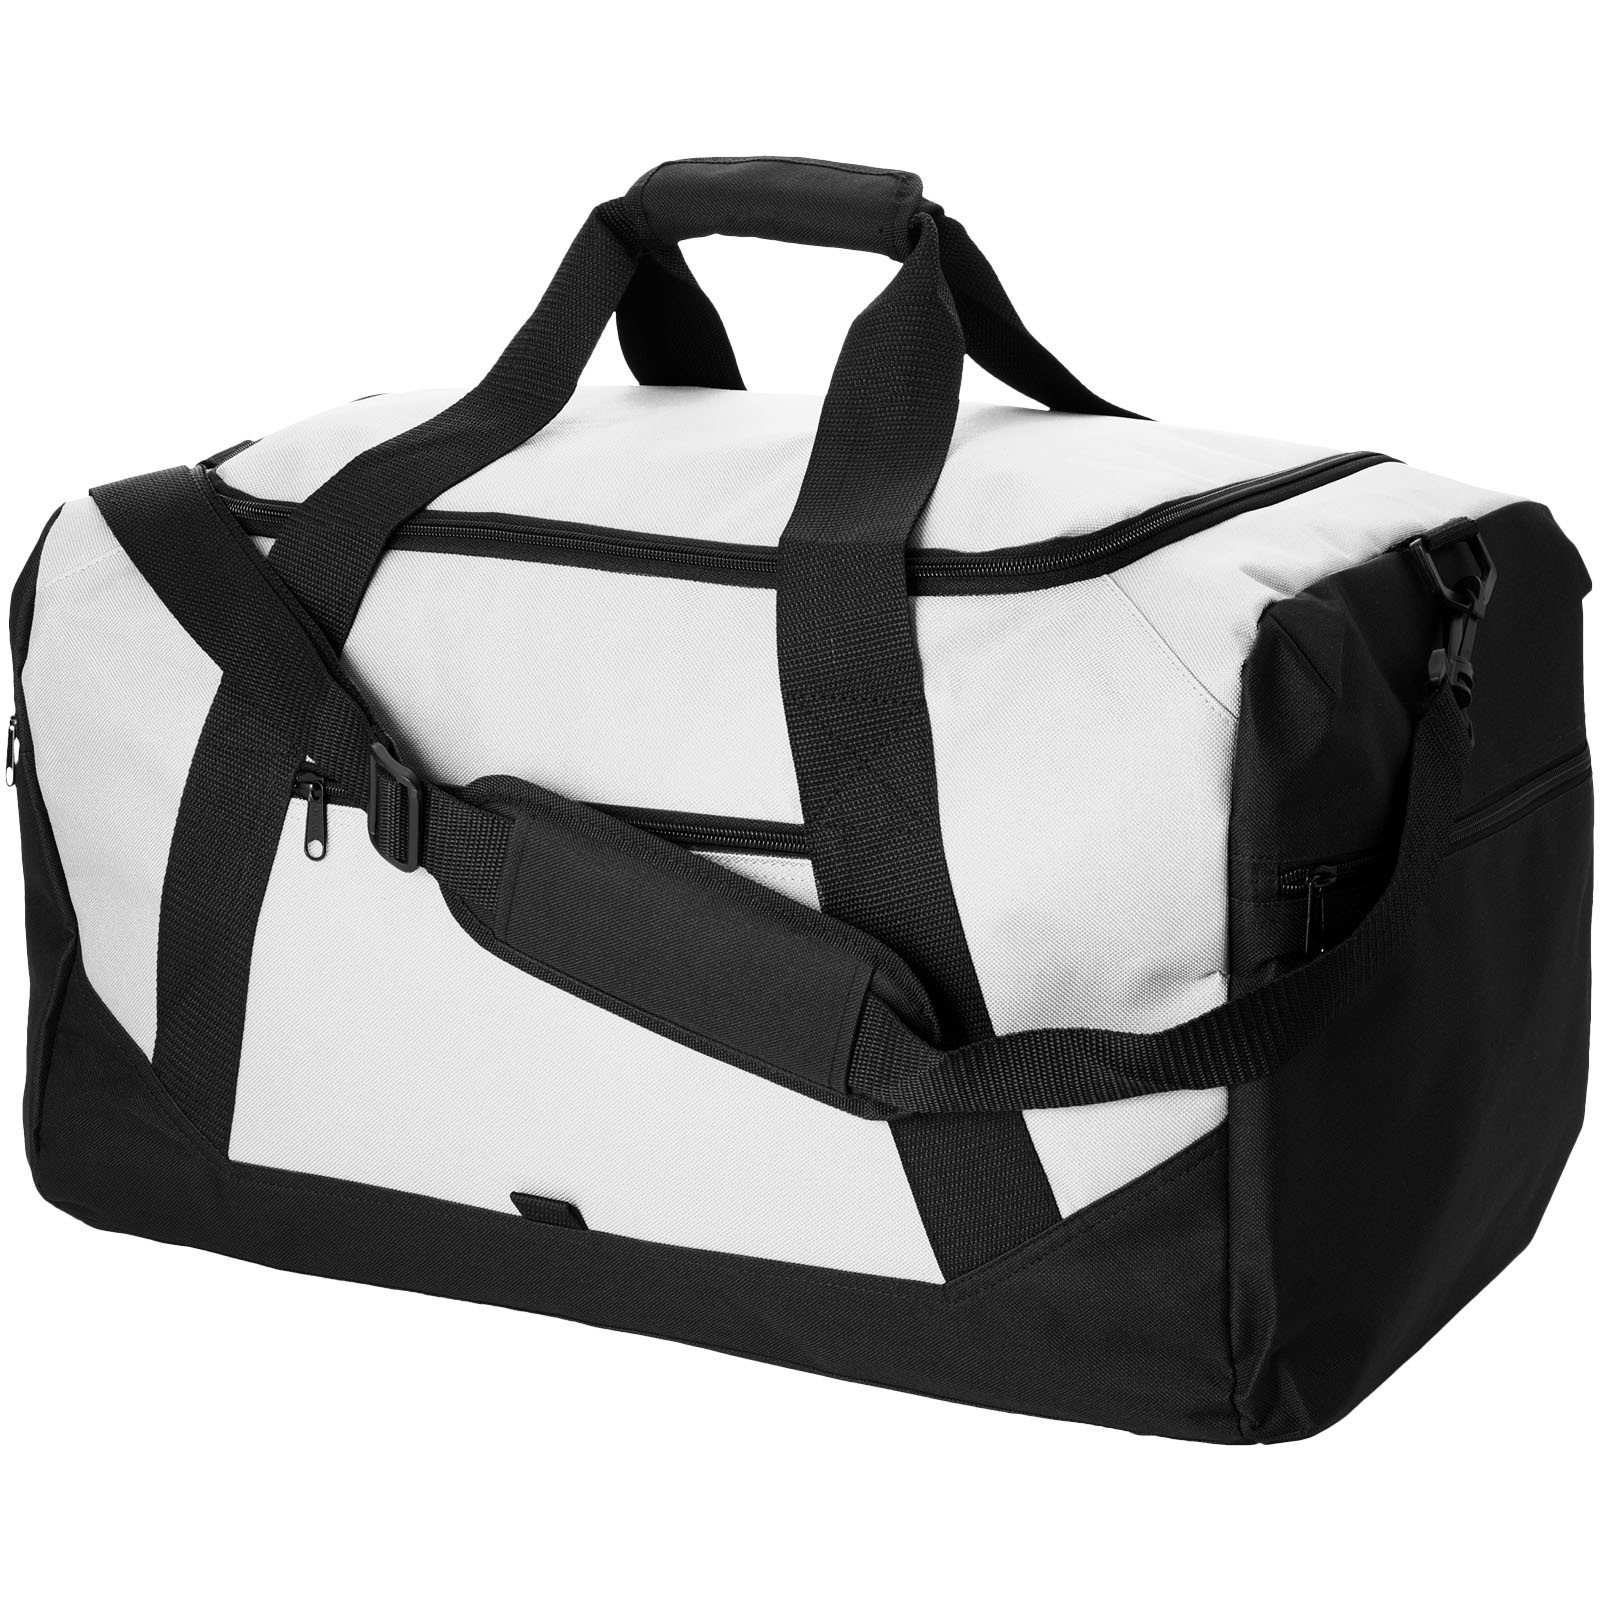 Columbia travel duffel bag - White / Solid black